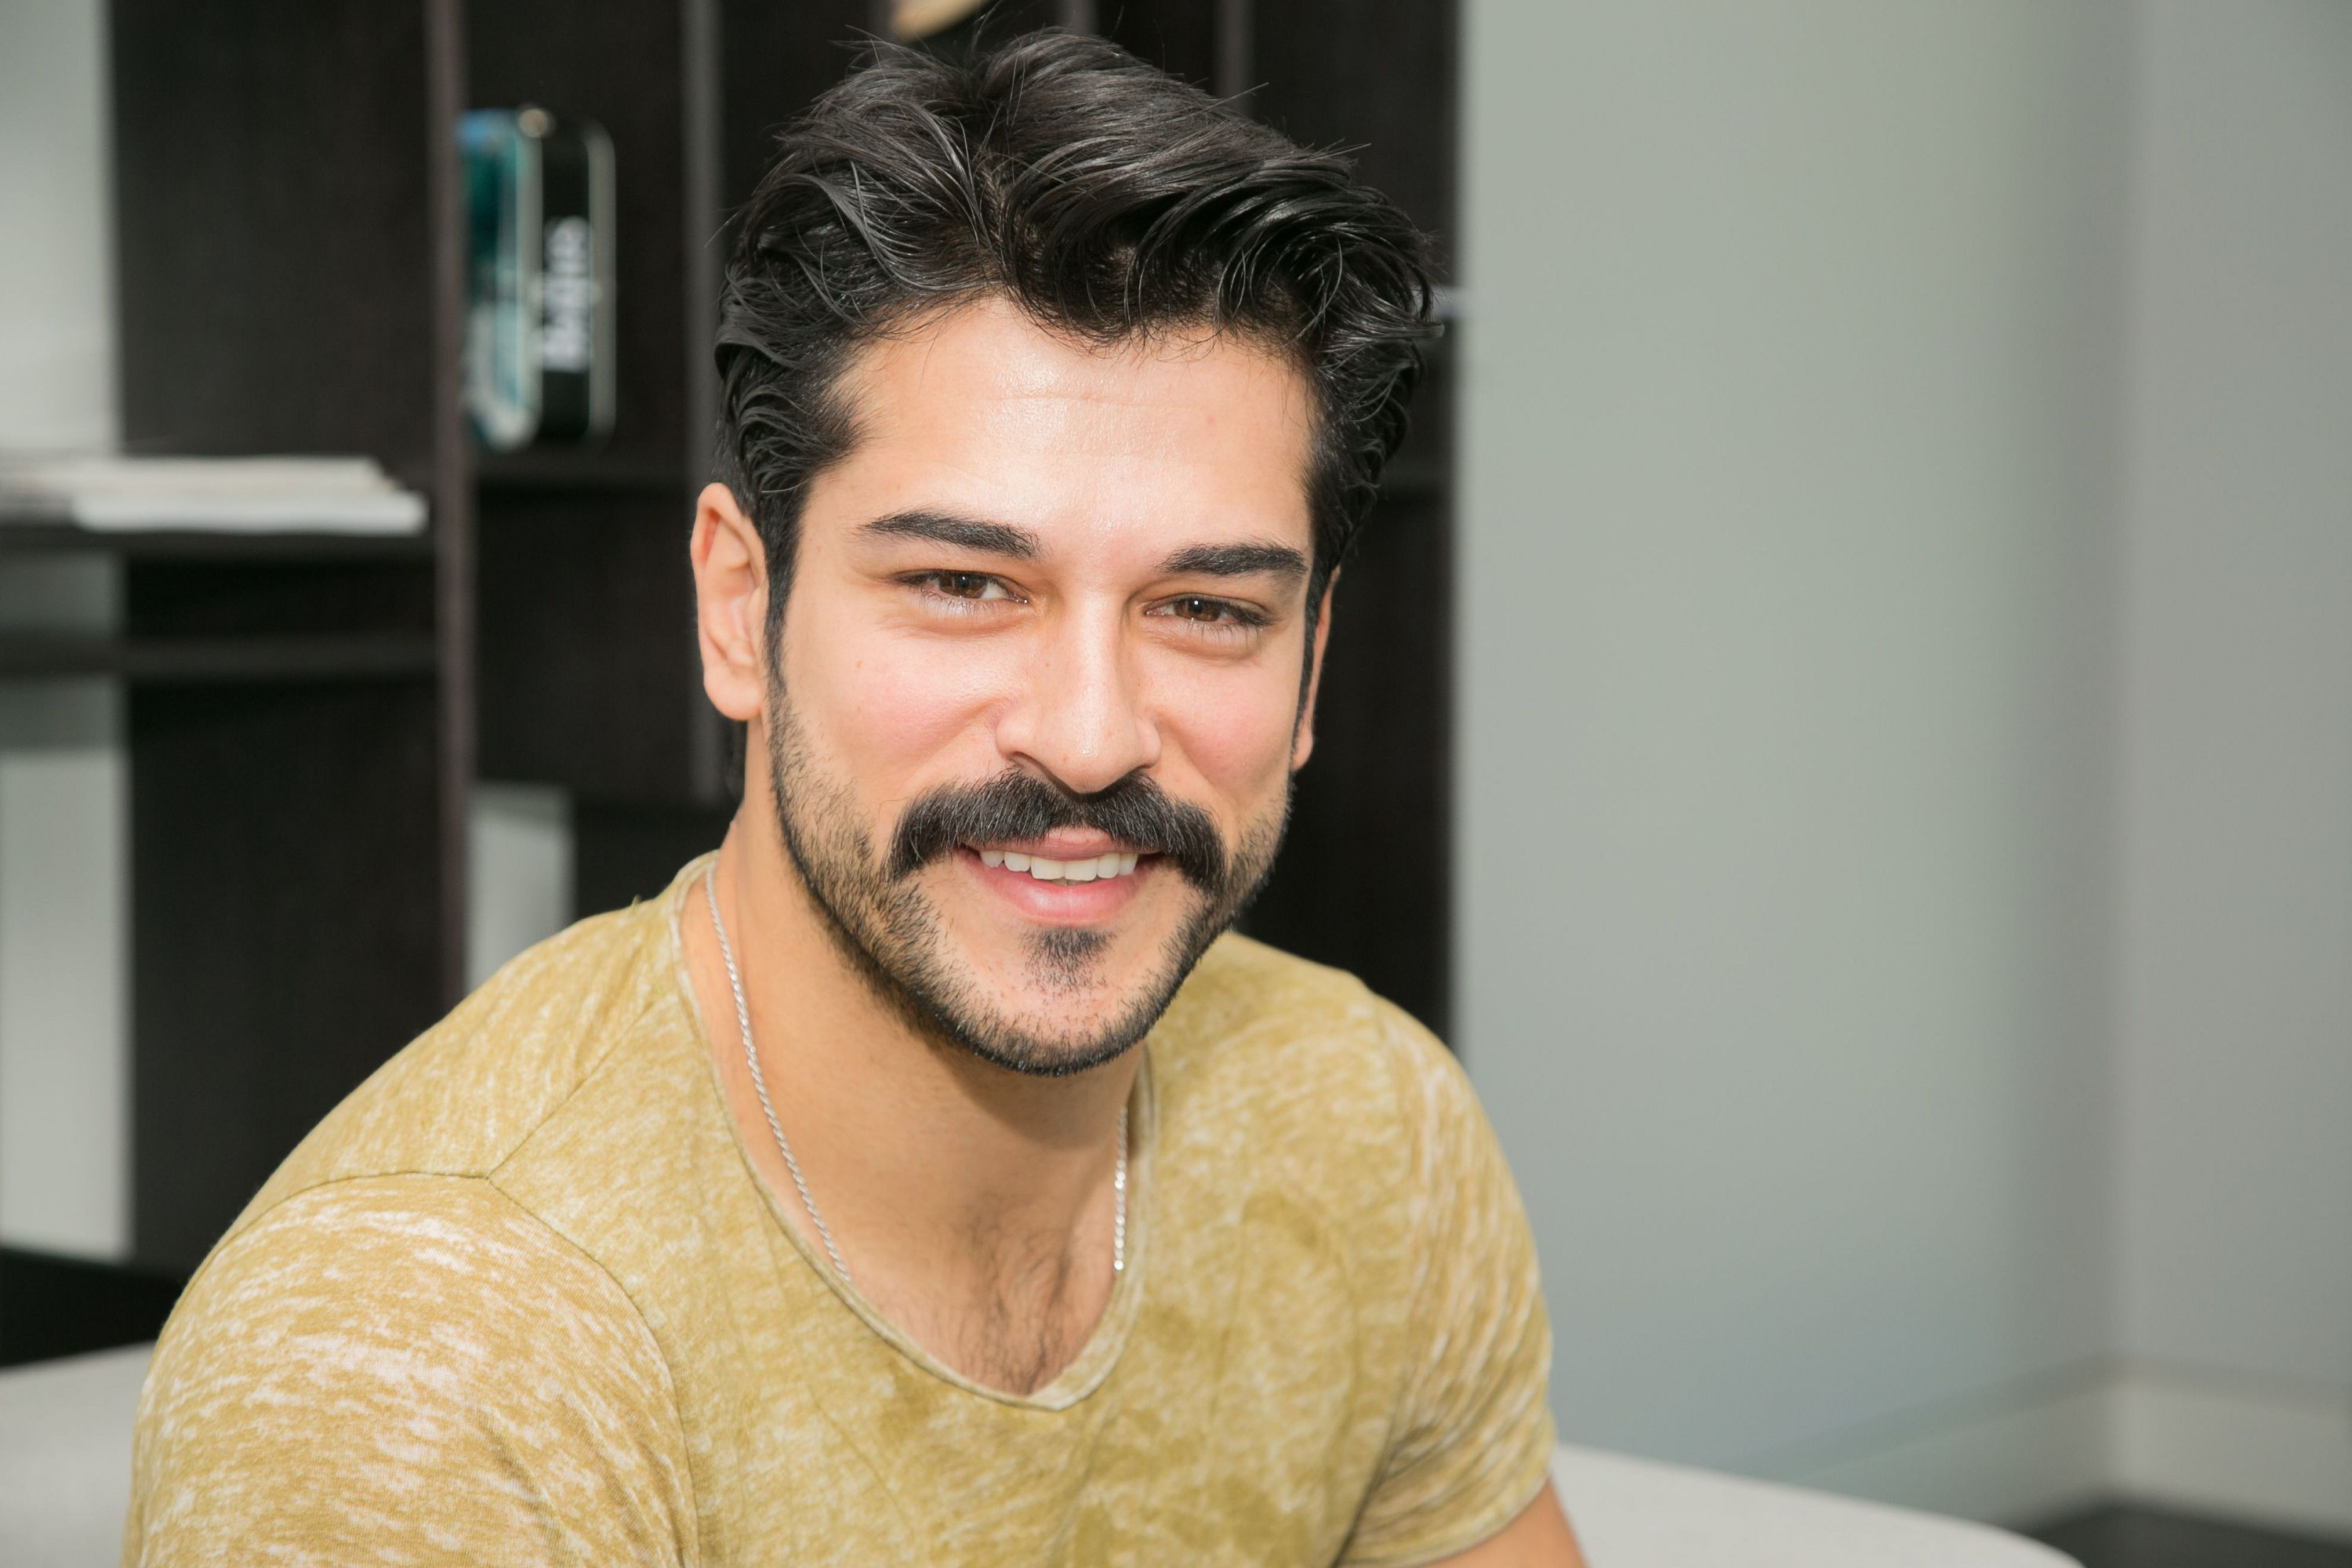 Burak Ozcivit Turkish Turkish TV Actor, Producer, Model, Entrepreneur